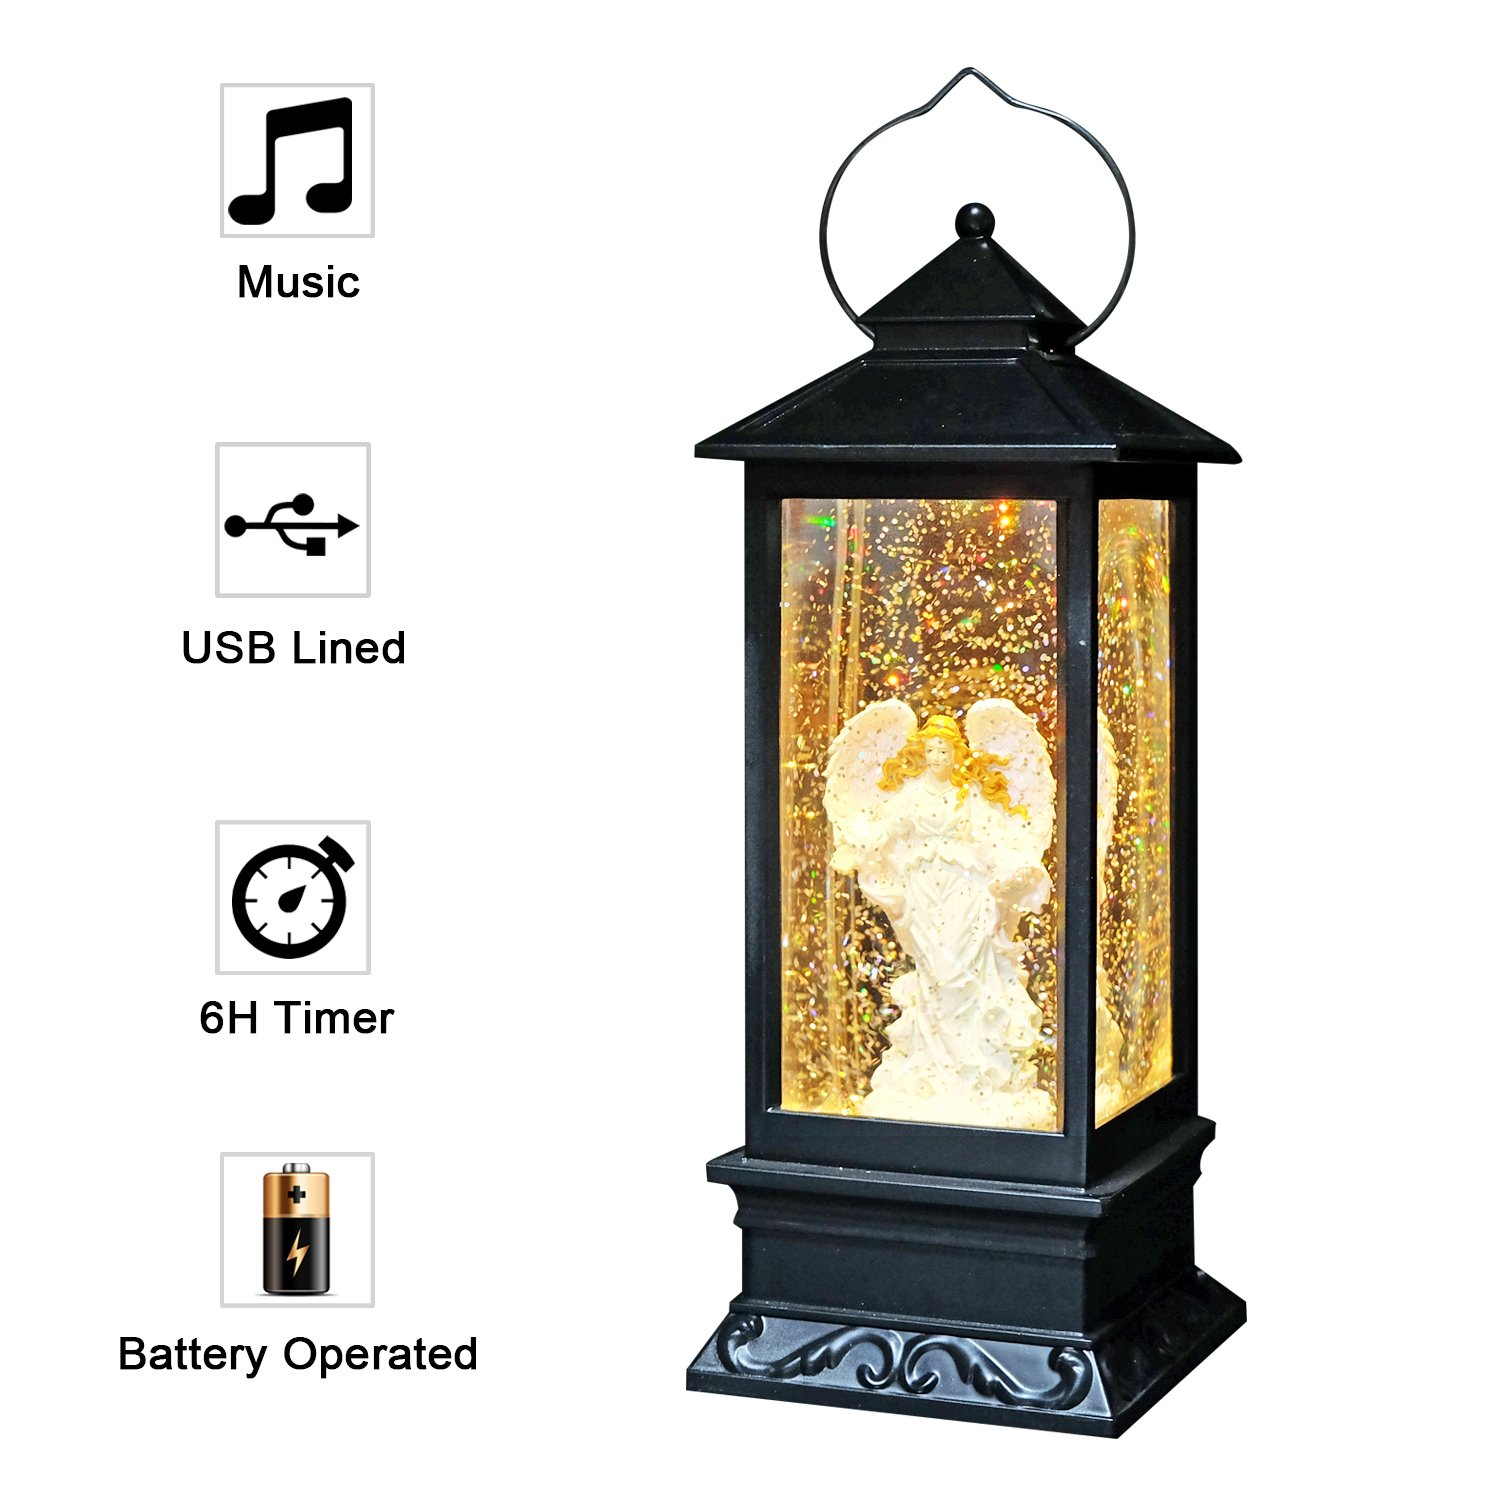 Eldnacele Musical Singing and Lighted Plug-in & Battery Operated Lighted Christmas Water Glittering Snowing Globe Christians Church Lantern for Home Decoration Angel by Eldnacele